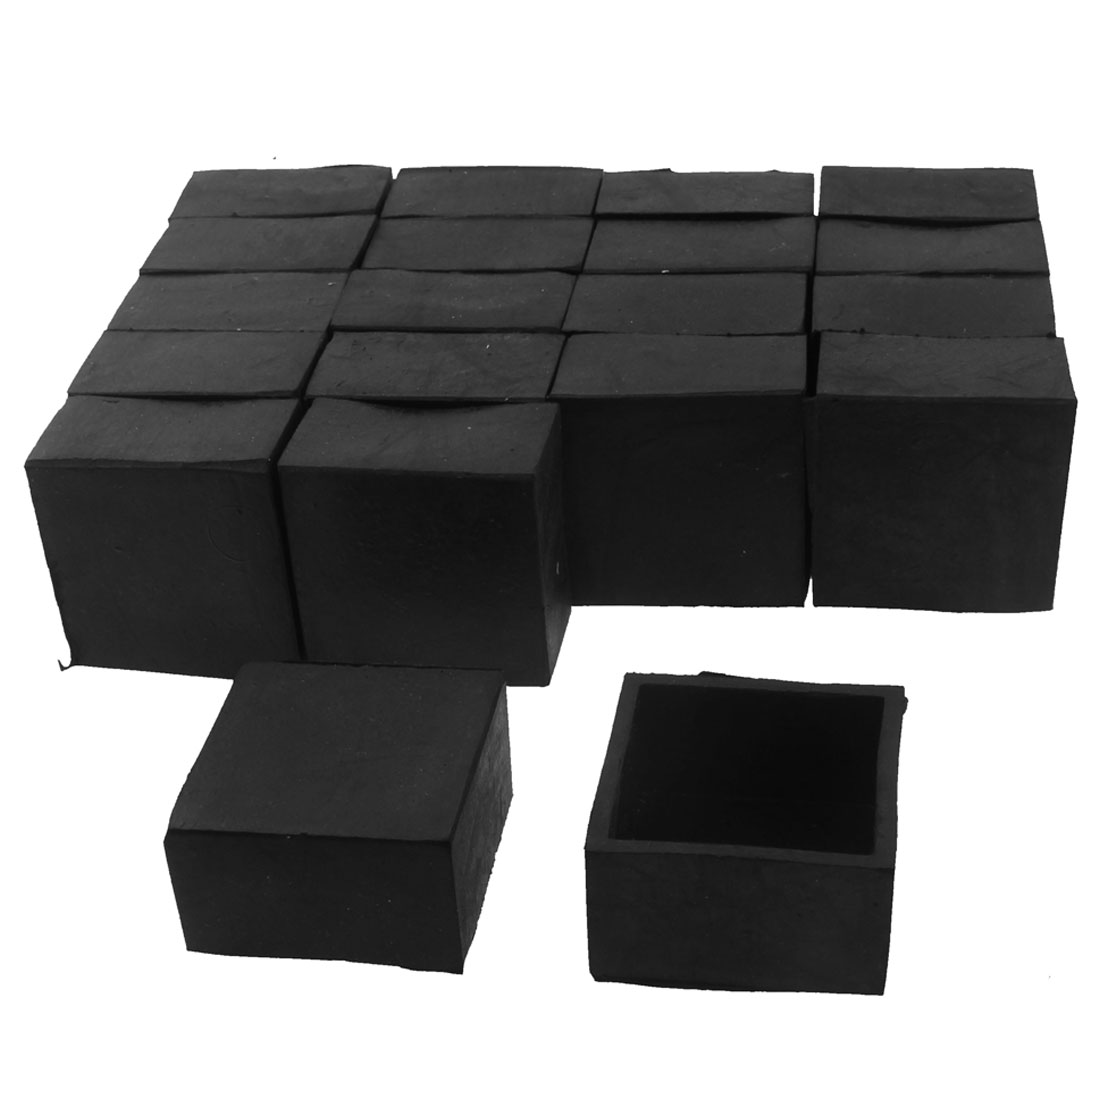 40mm x 40mm Square Shaped Furniture Table Chair Foot Leg Rubber End Cap Cover Black 20pcs